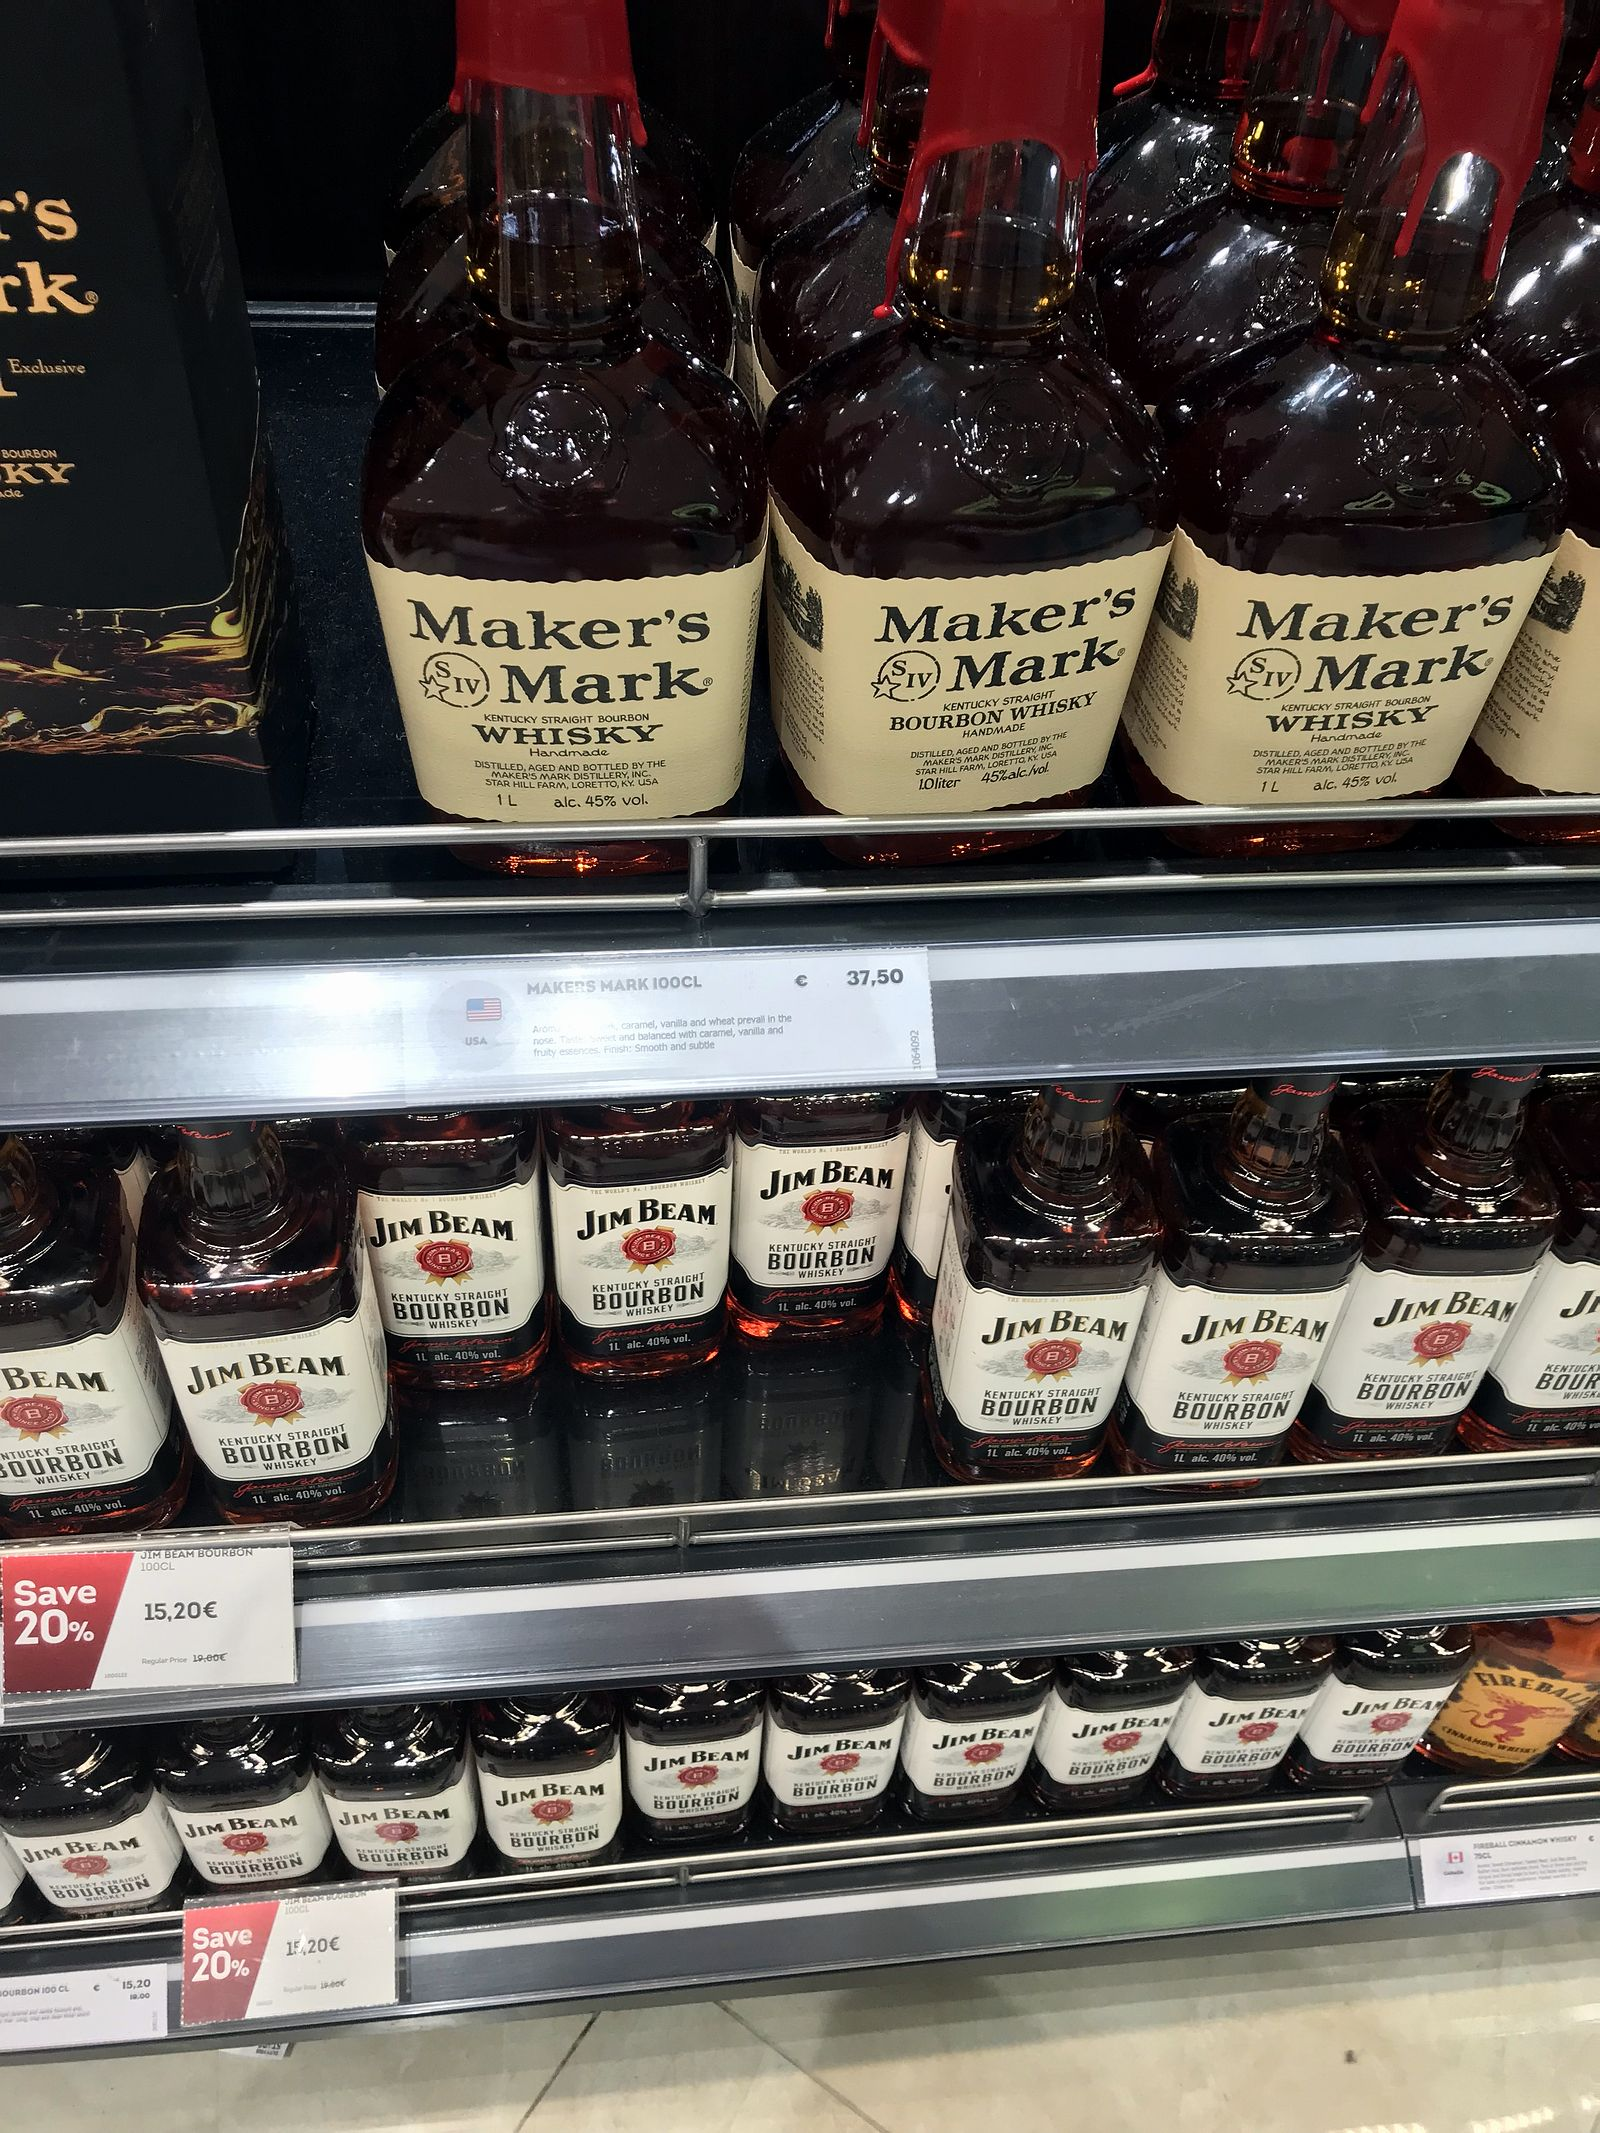 Duty free Antalya, august 2019, bourbon Maker's Mark, Jim Beam